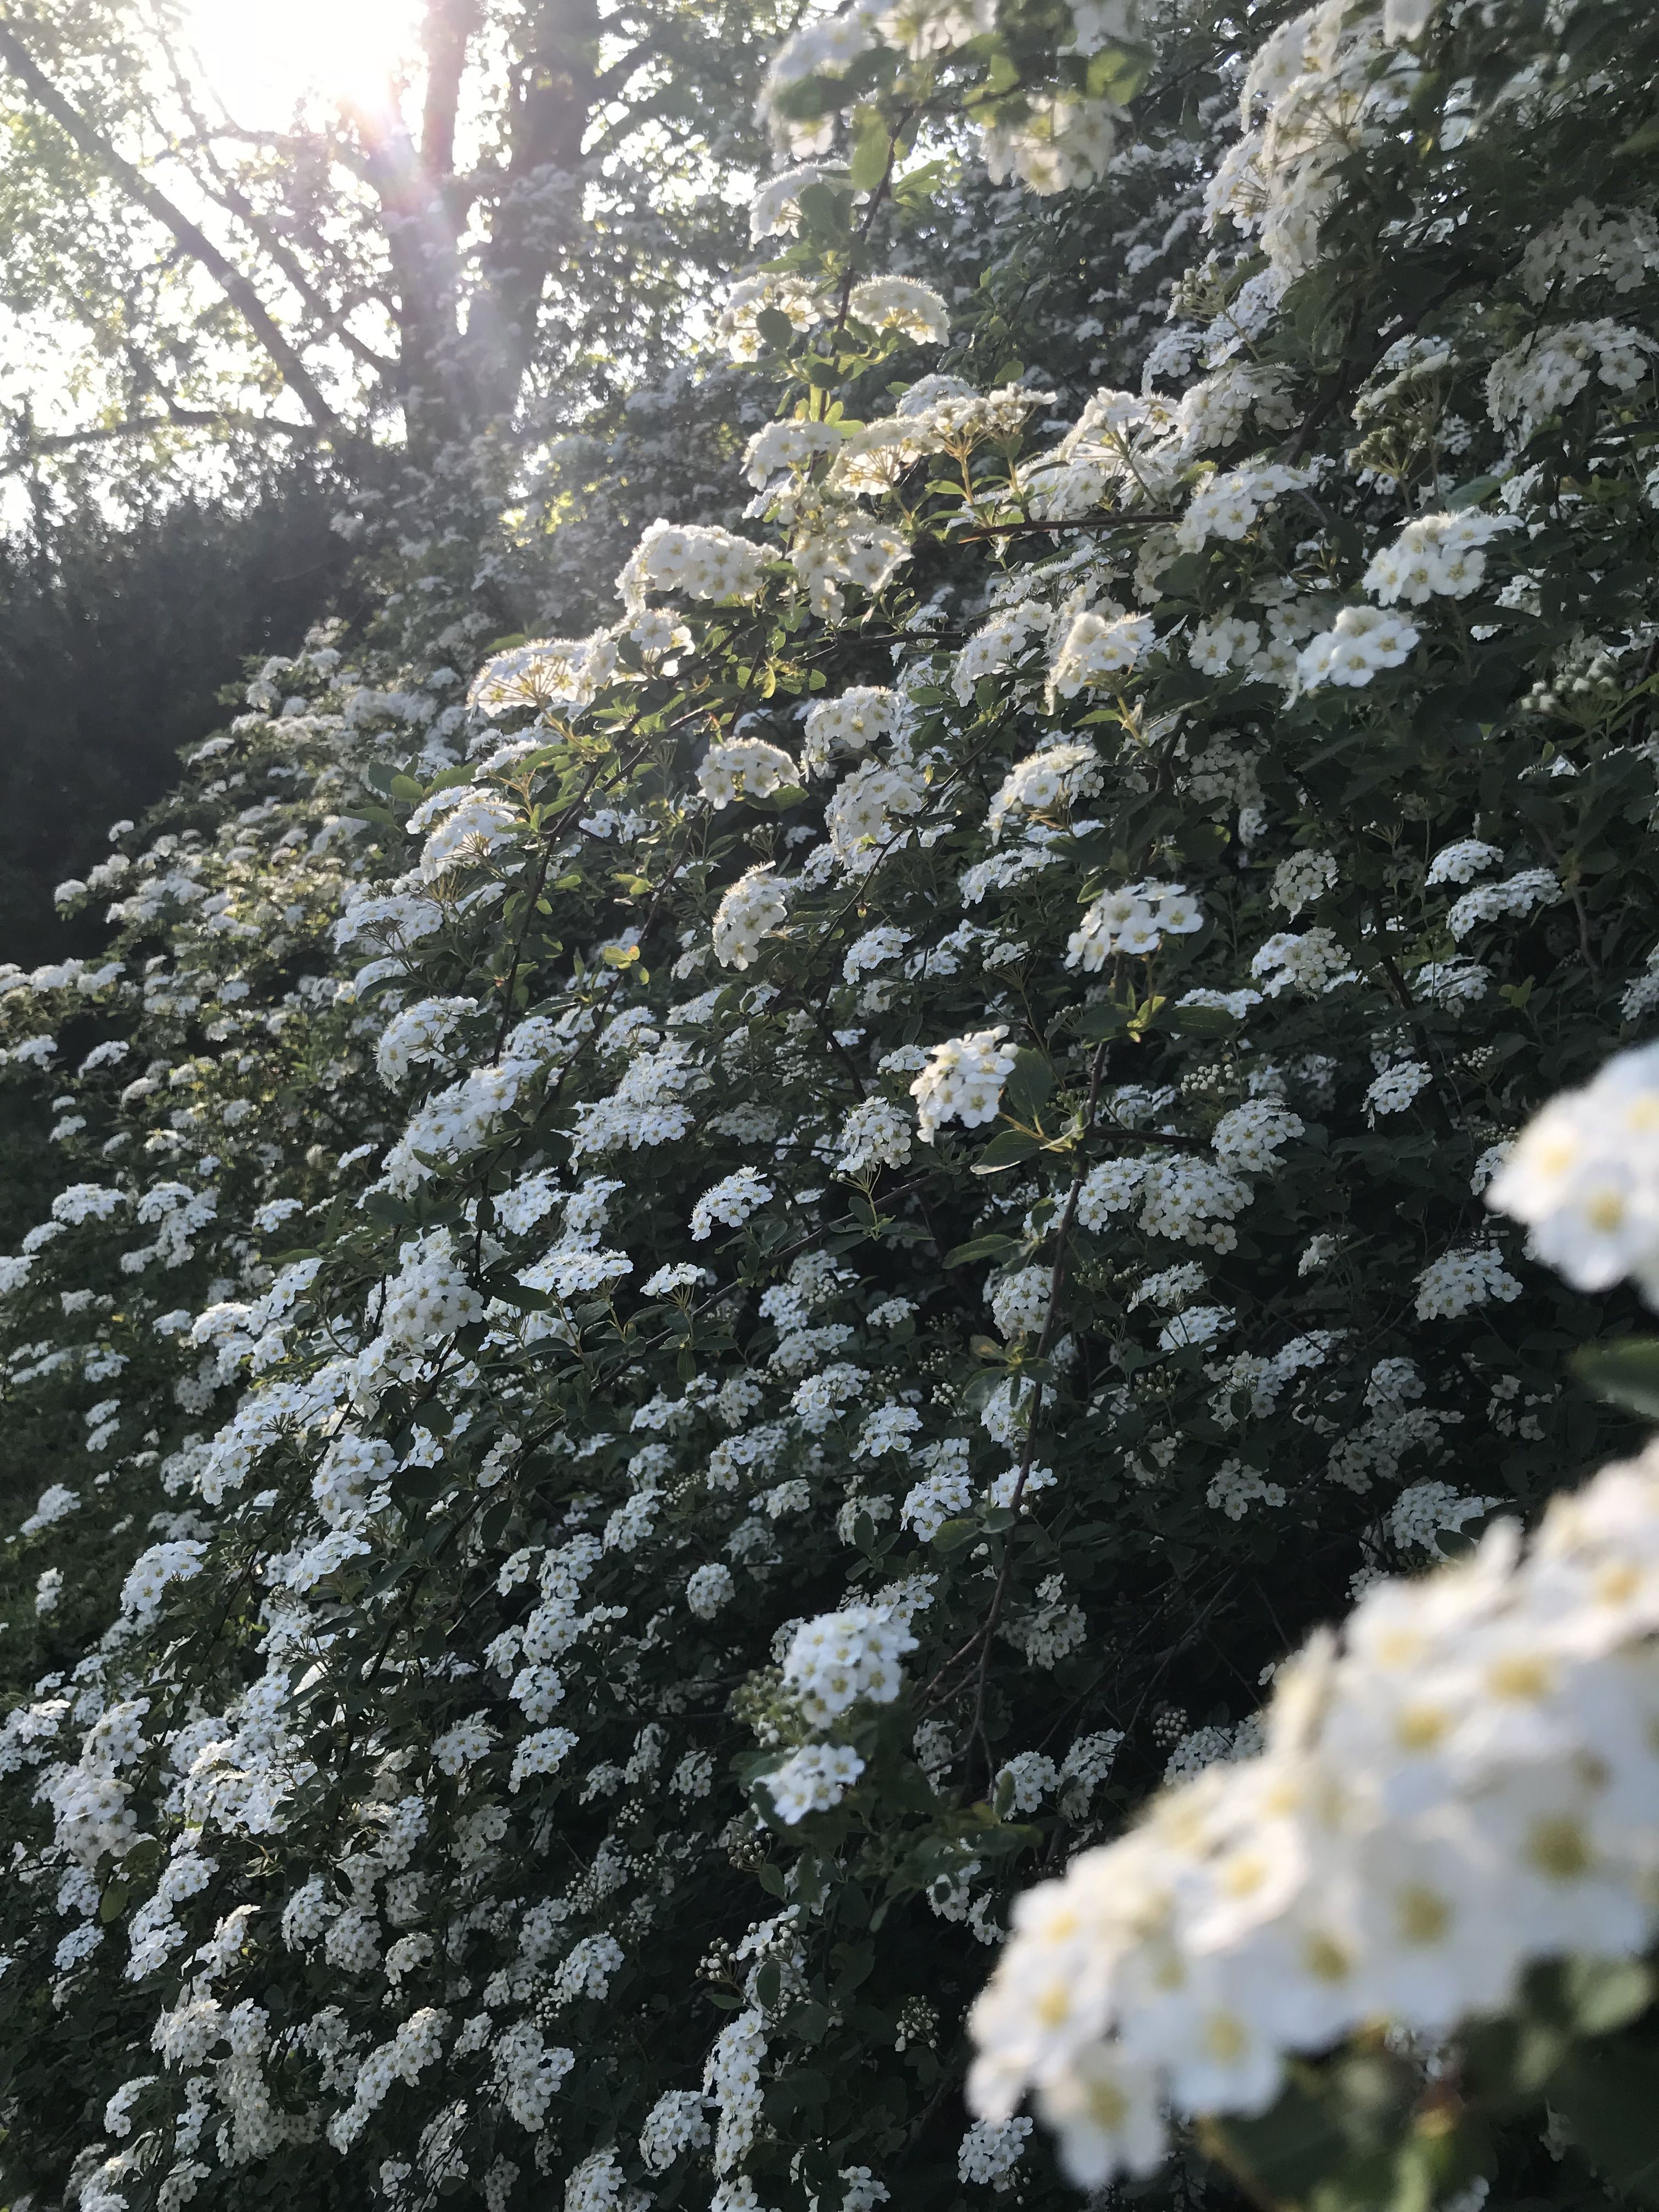 Bridal Wreath in the early morning Wedding officiant